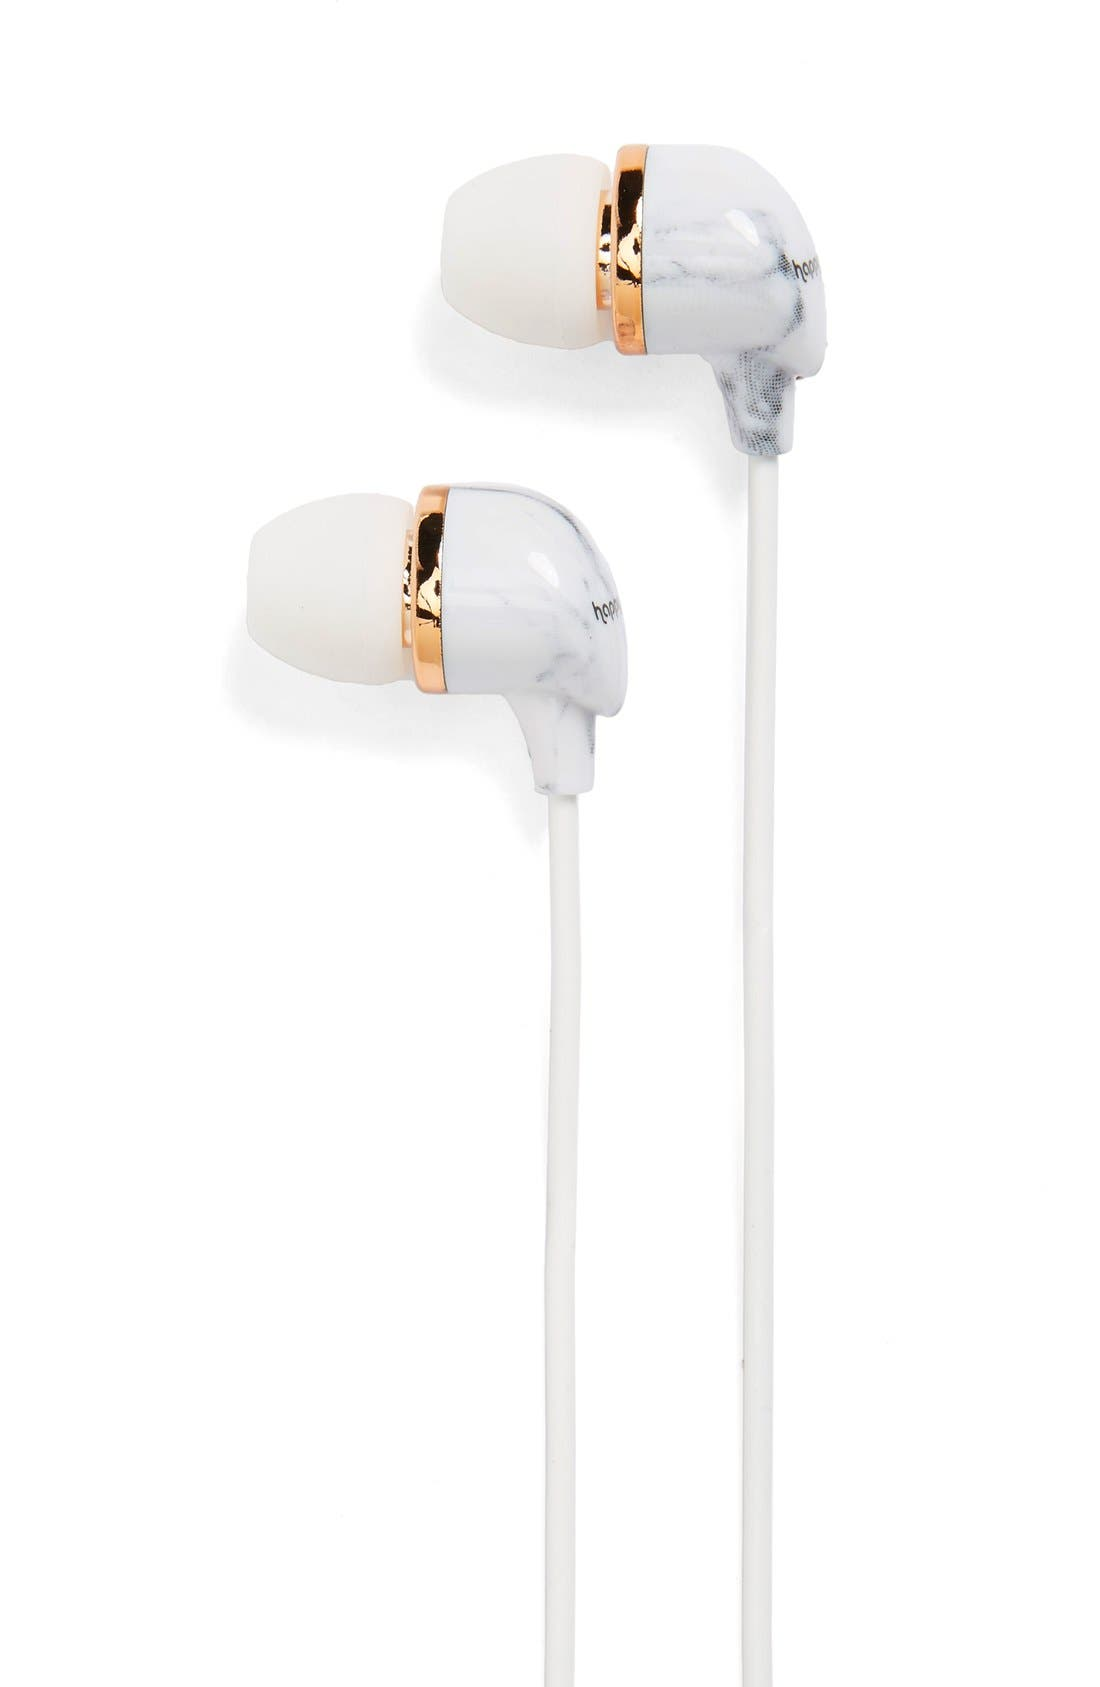 Alternate Image 1 Selected - Happy Plugs In-Ear Headphones